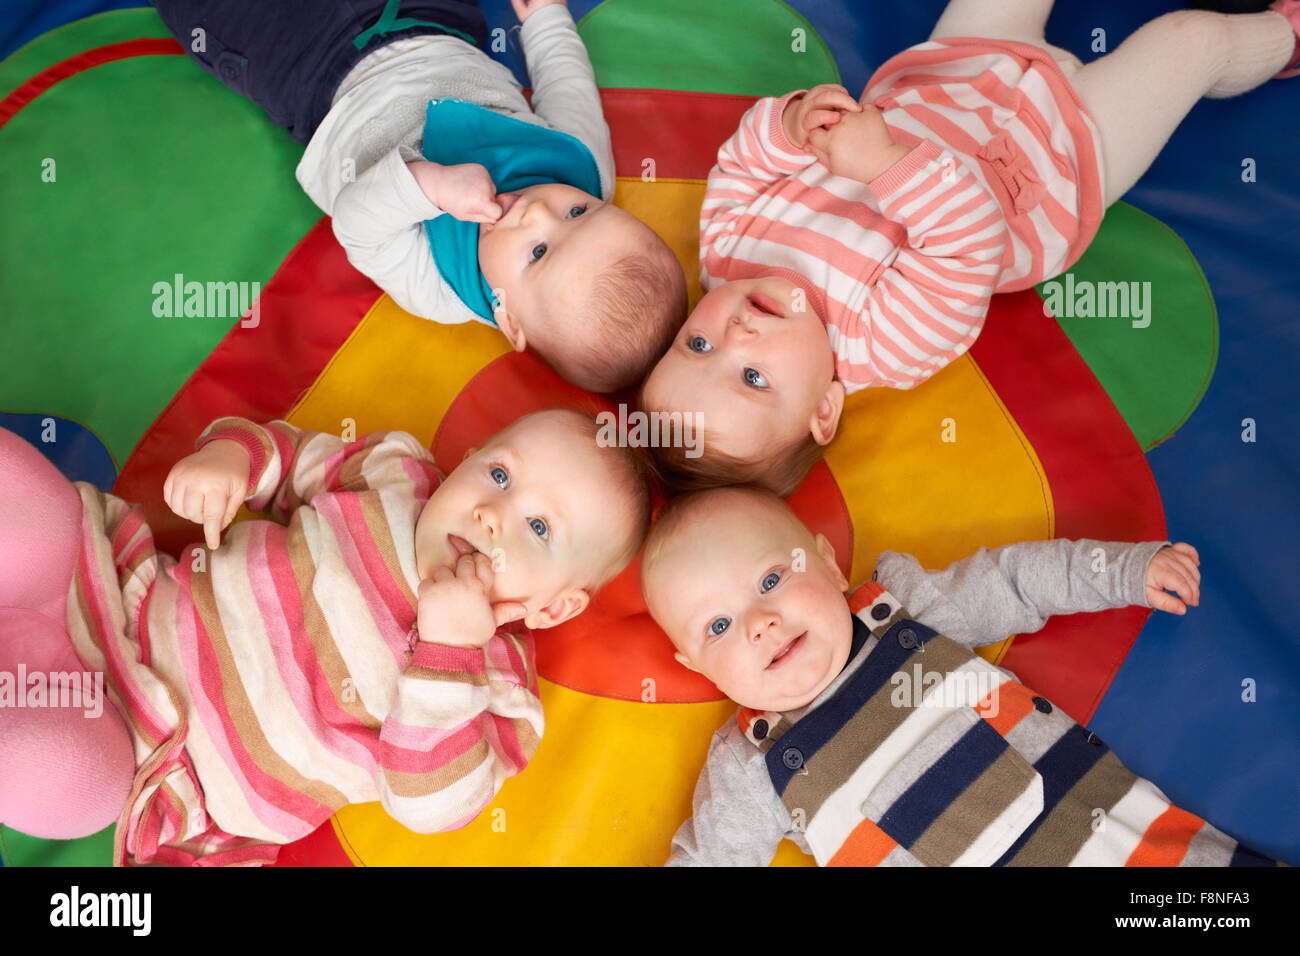 Overhead View Of Babies Lying On Mat At Playgroup - Stock Image